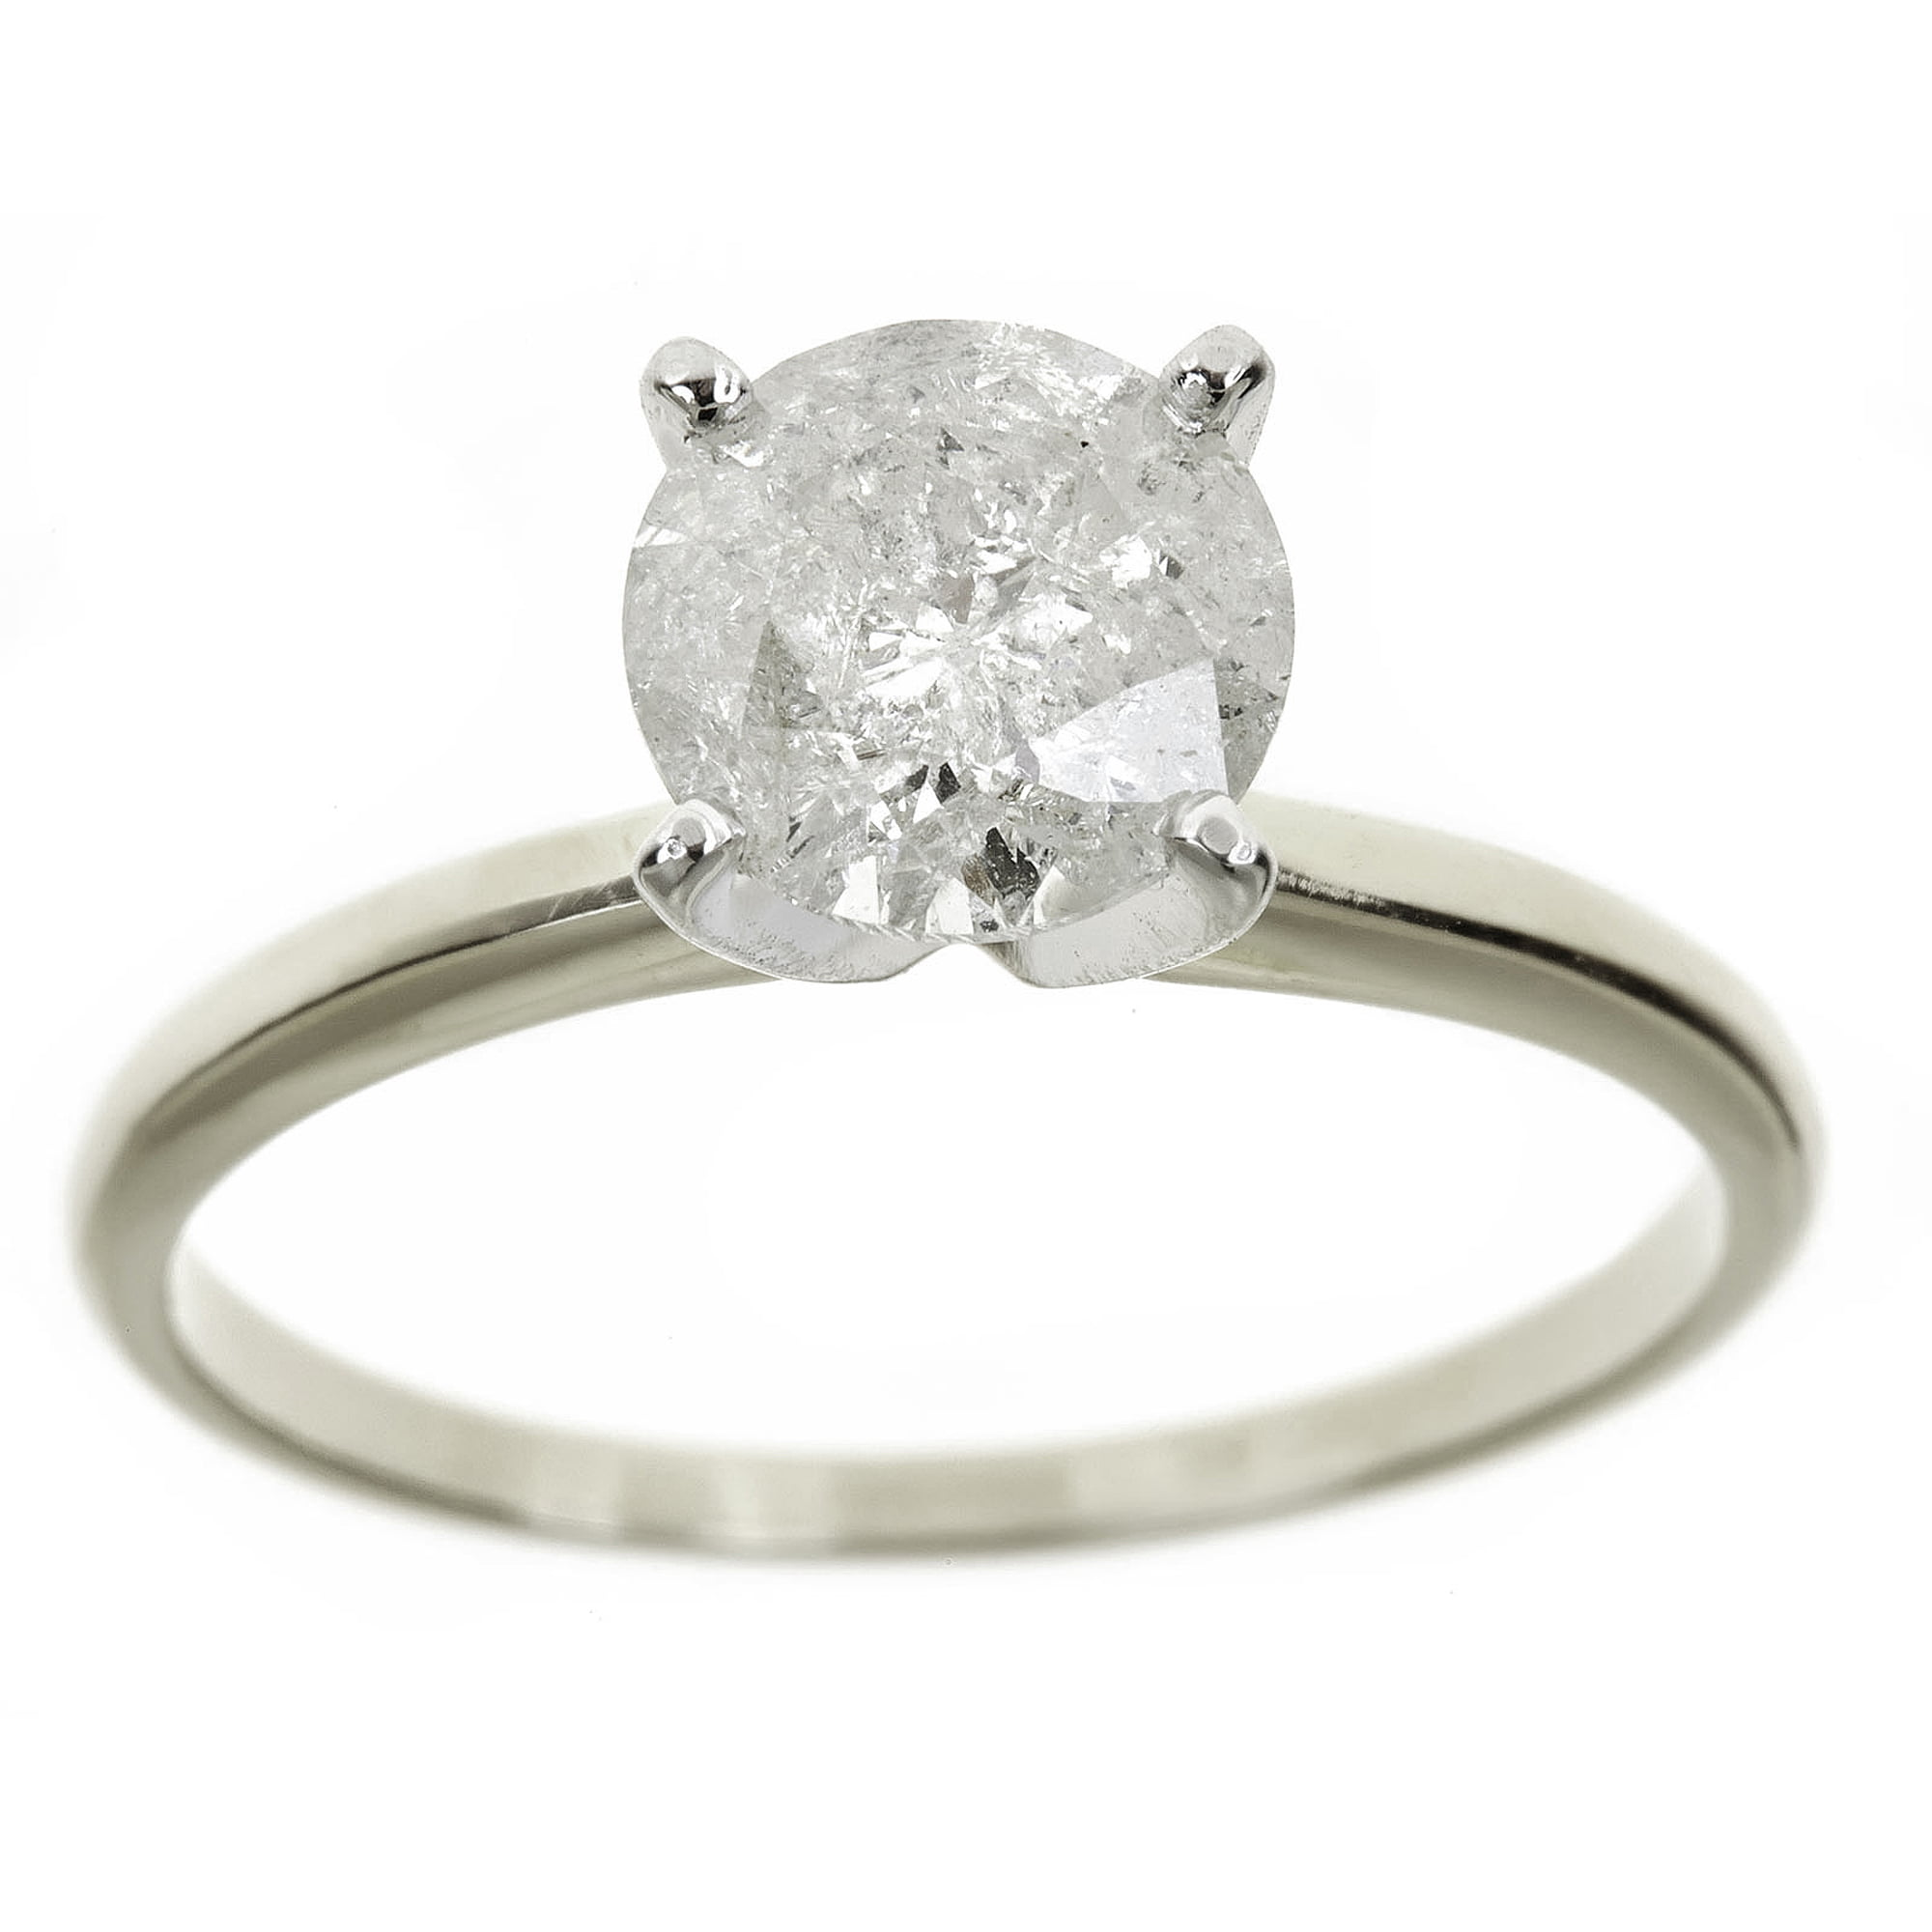 13 Carat Round Diamond Solitaire Ring in 14K White Gold